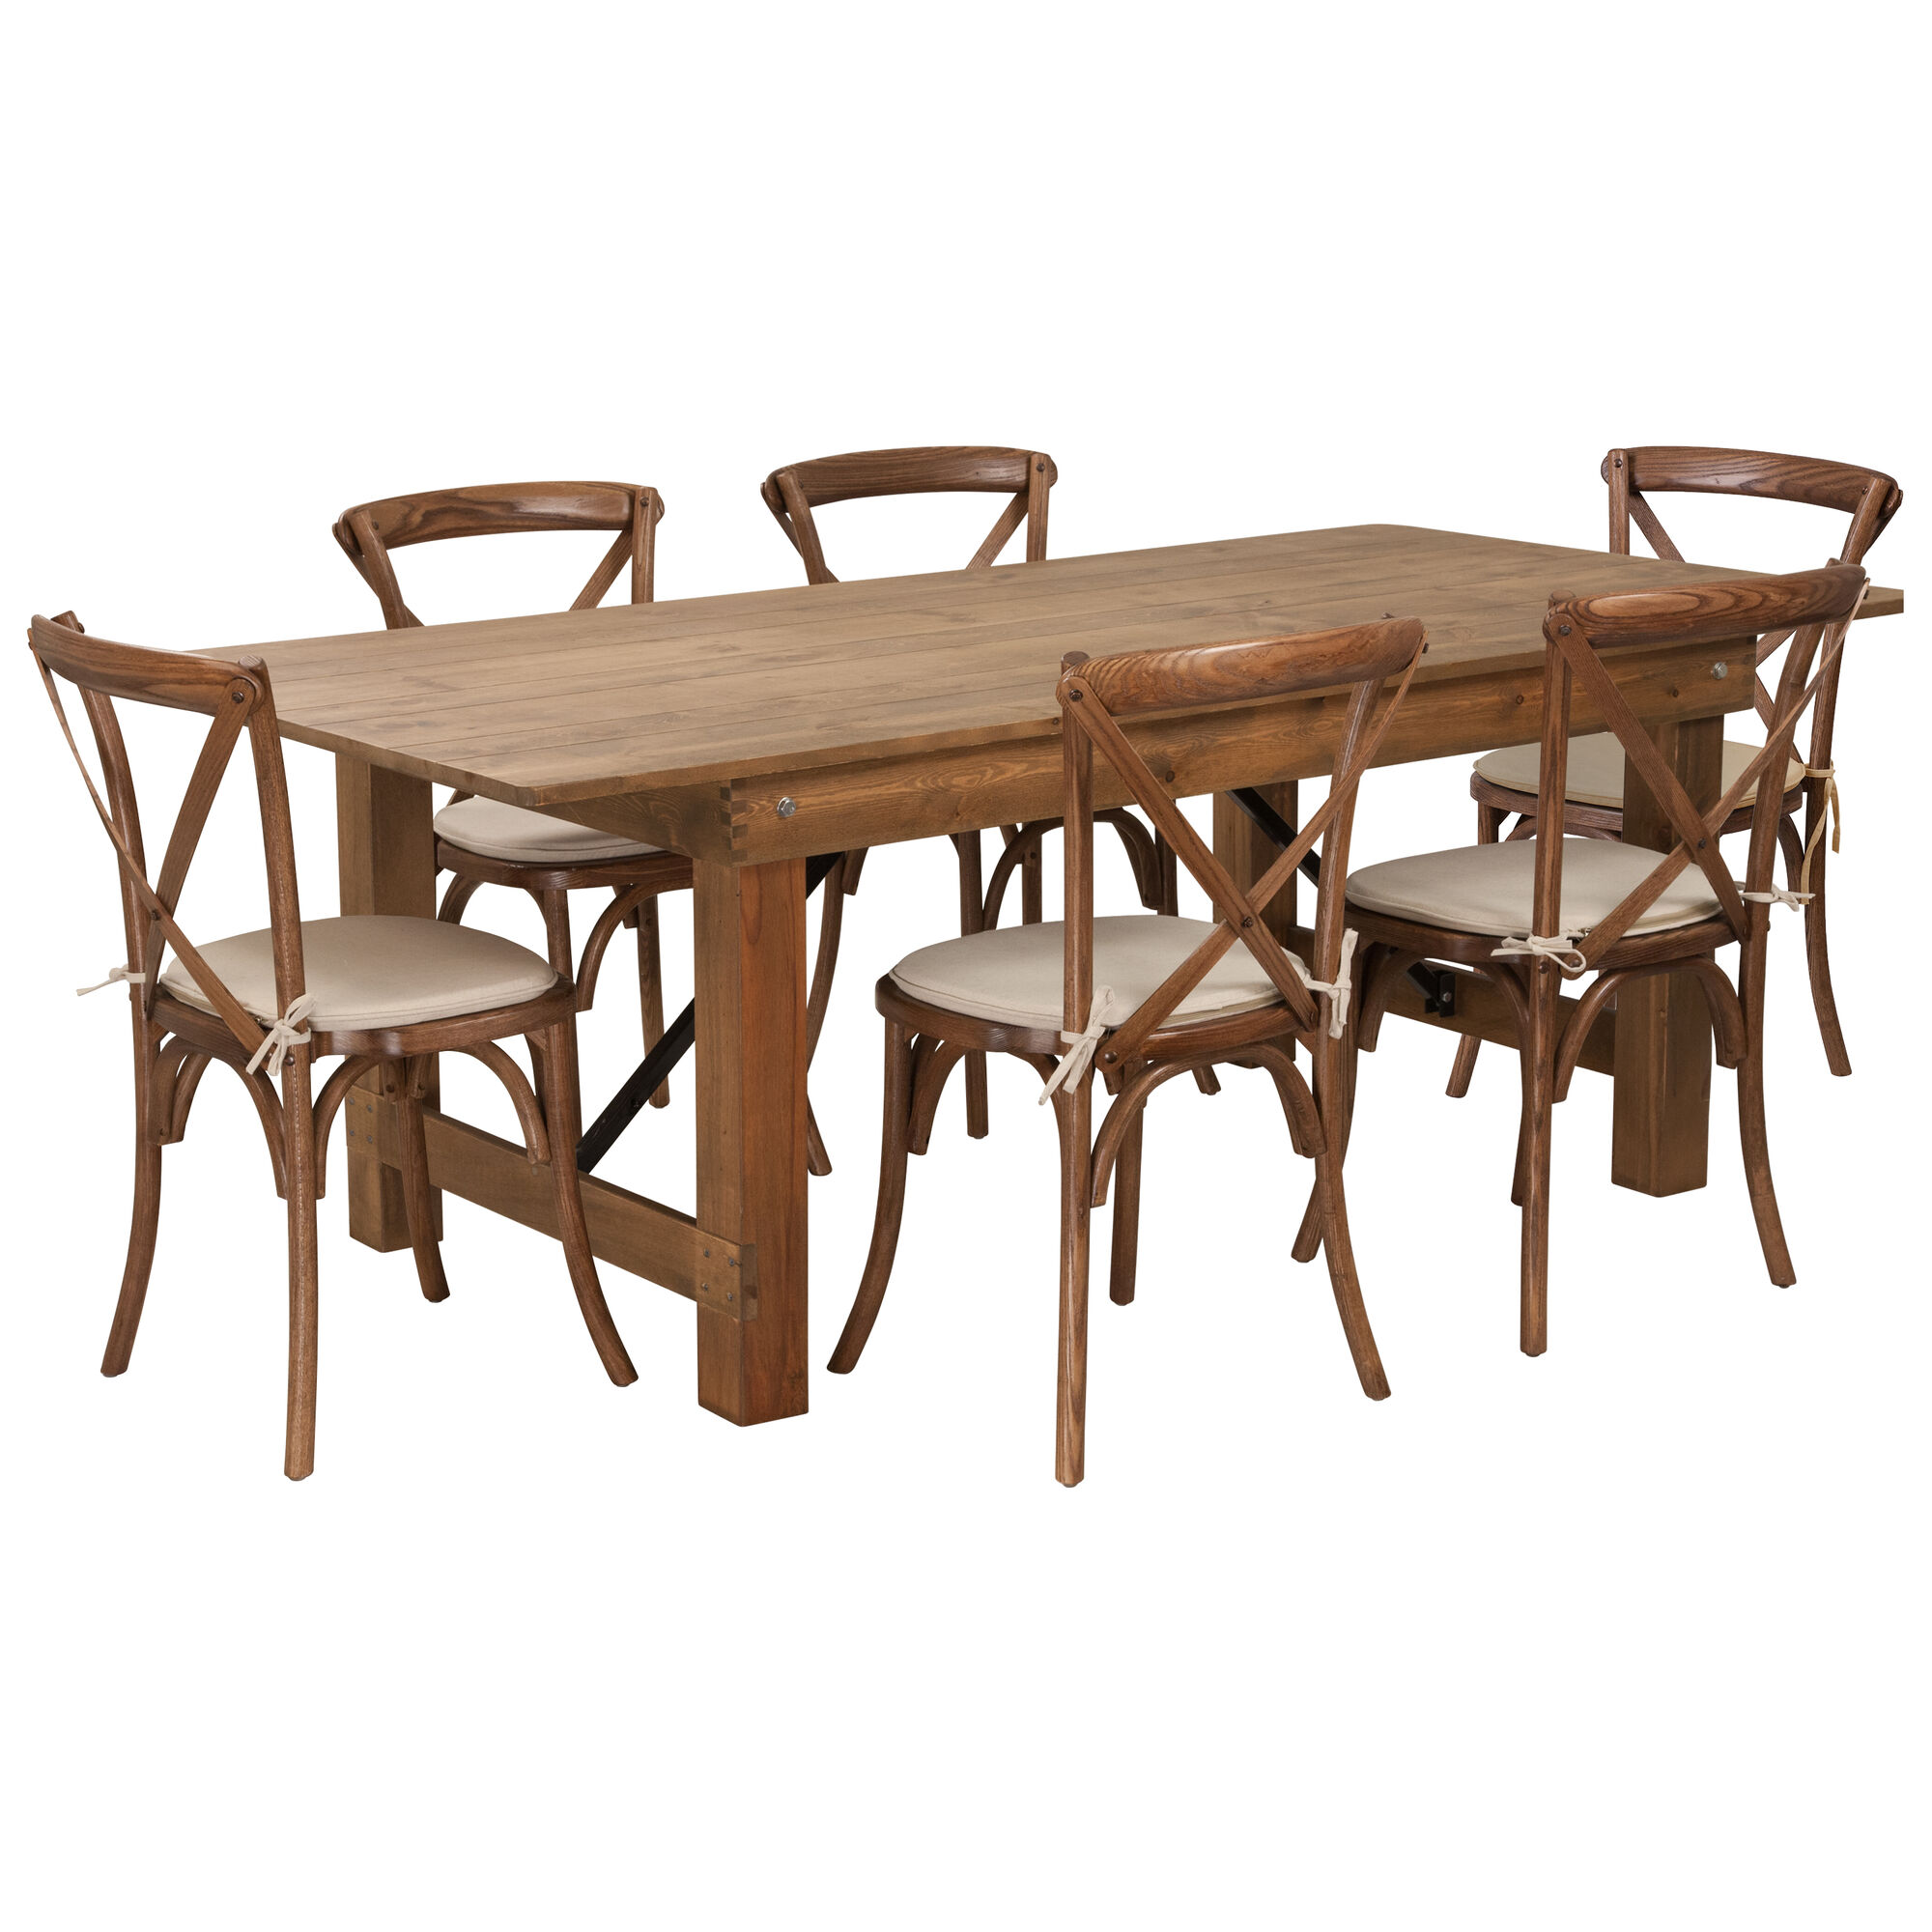 Admirable Hercules Series 7 X 40 Antique Rustic Folding Farm Table Set With 6 Cross Back Chairs And Cushions Ibusinesslaw Wood Chair Design Ideas Ibusinesslaworg